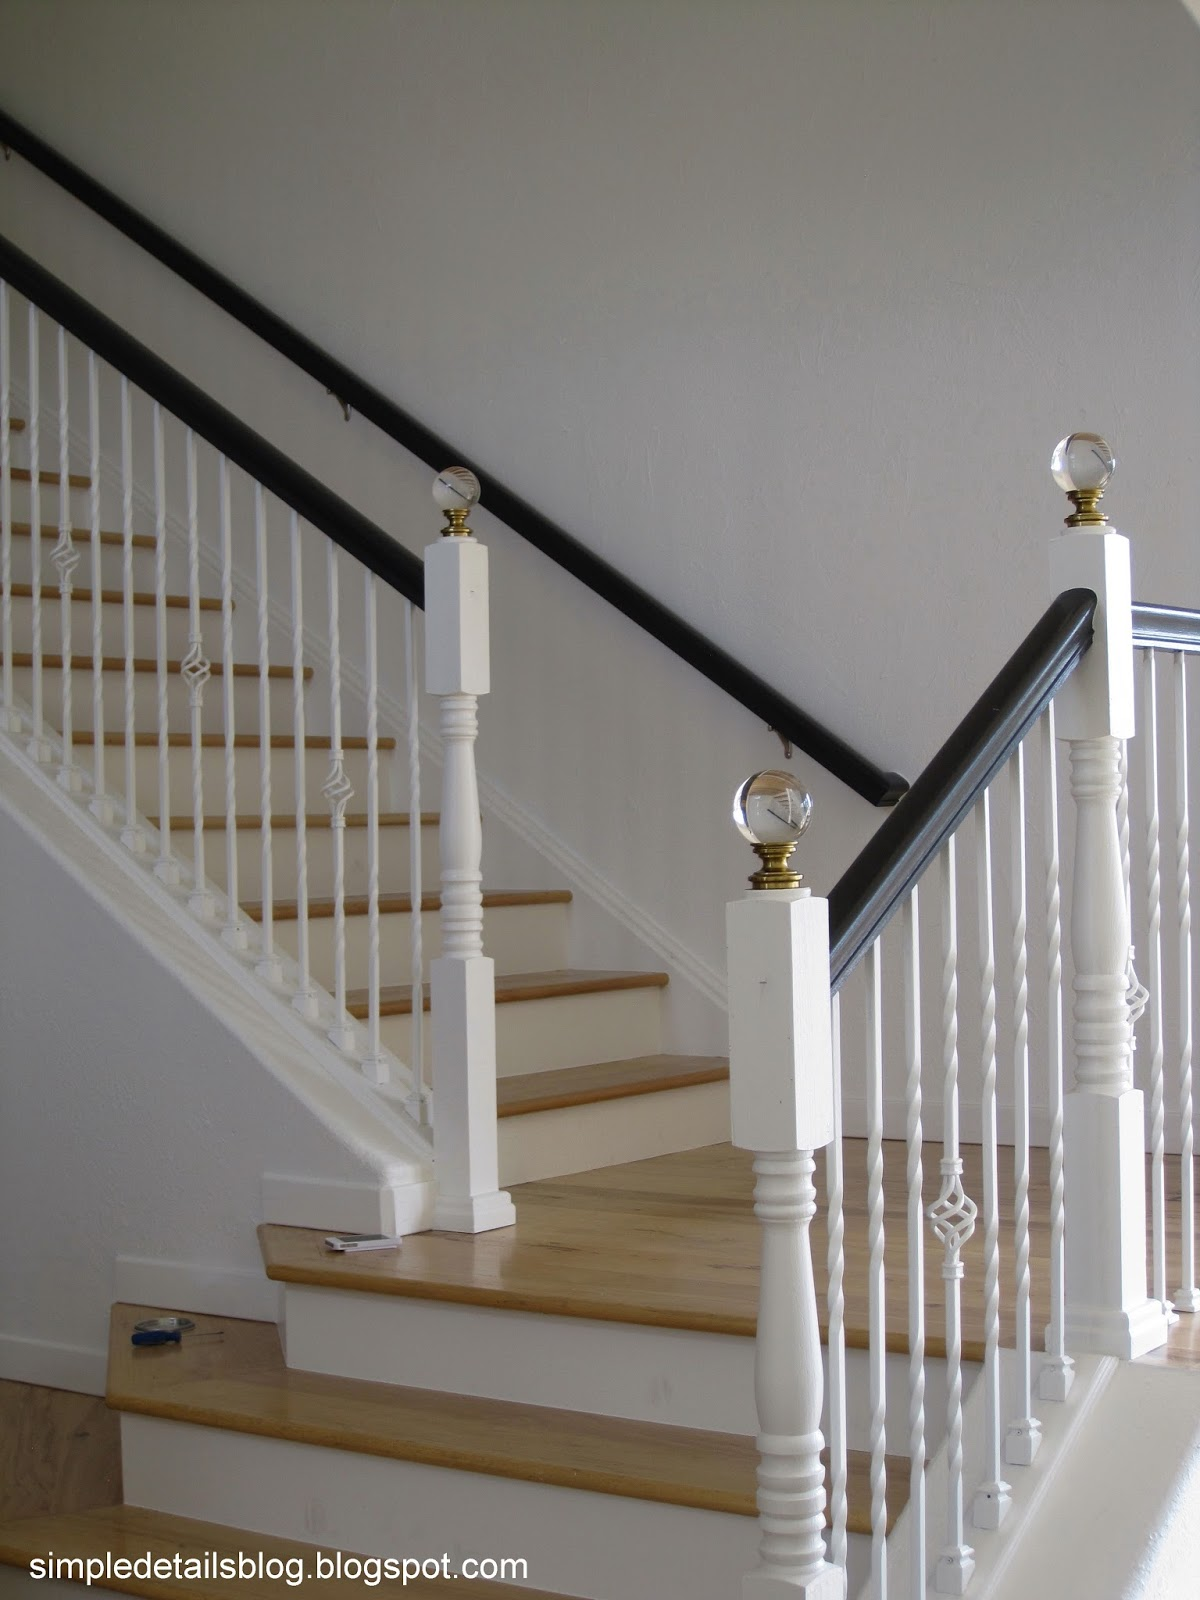 Amazing Simple Details: Diy Staircase Finials.